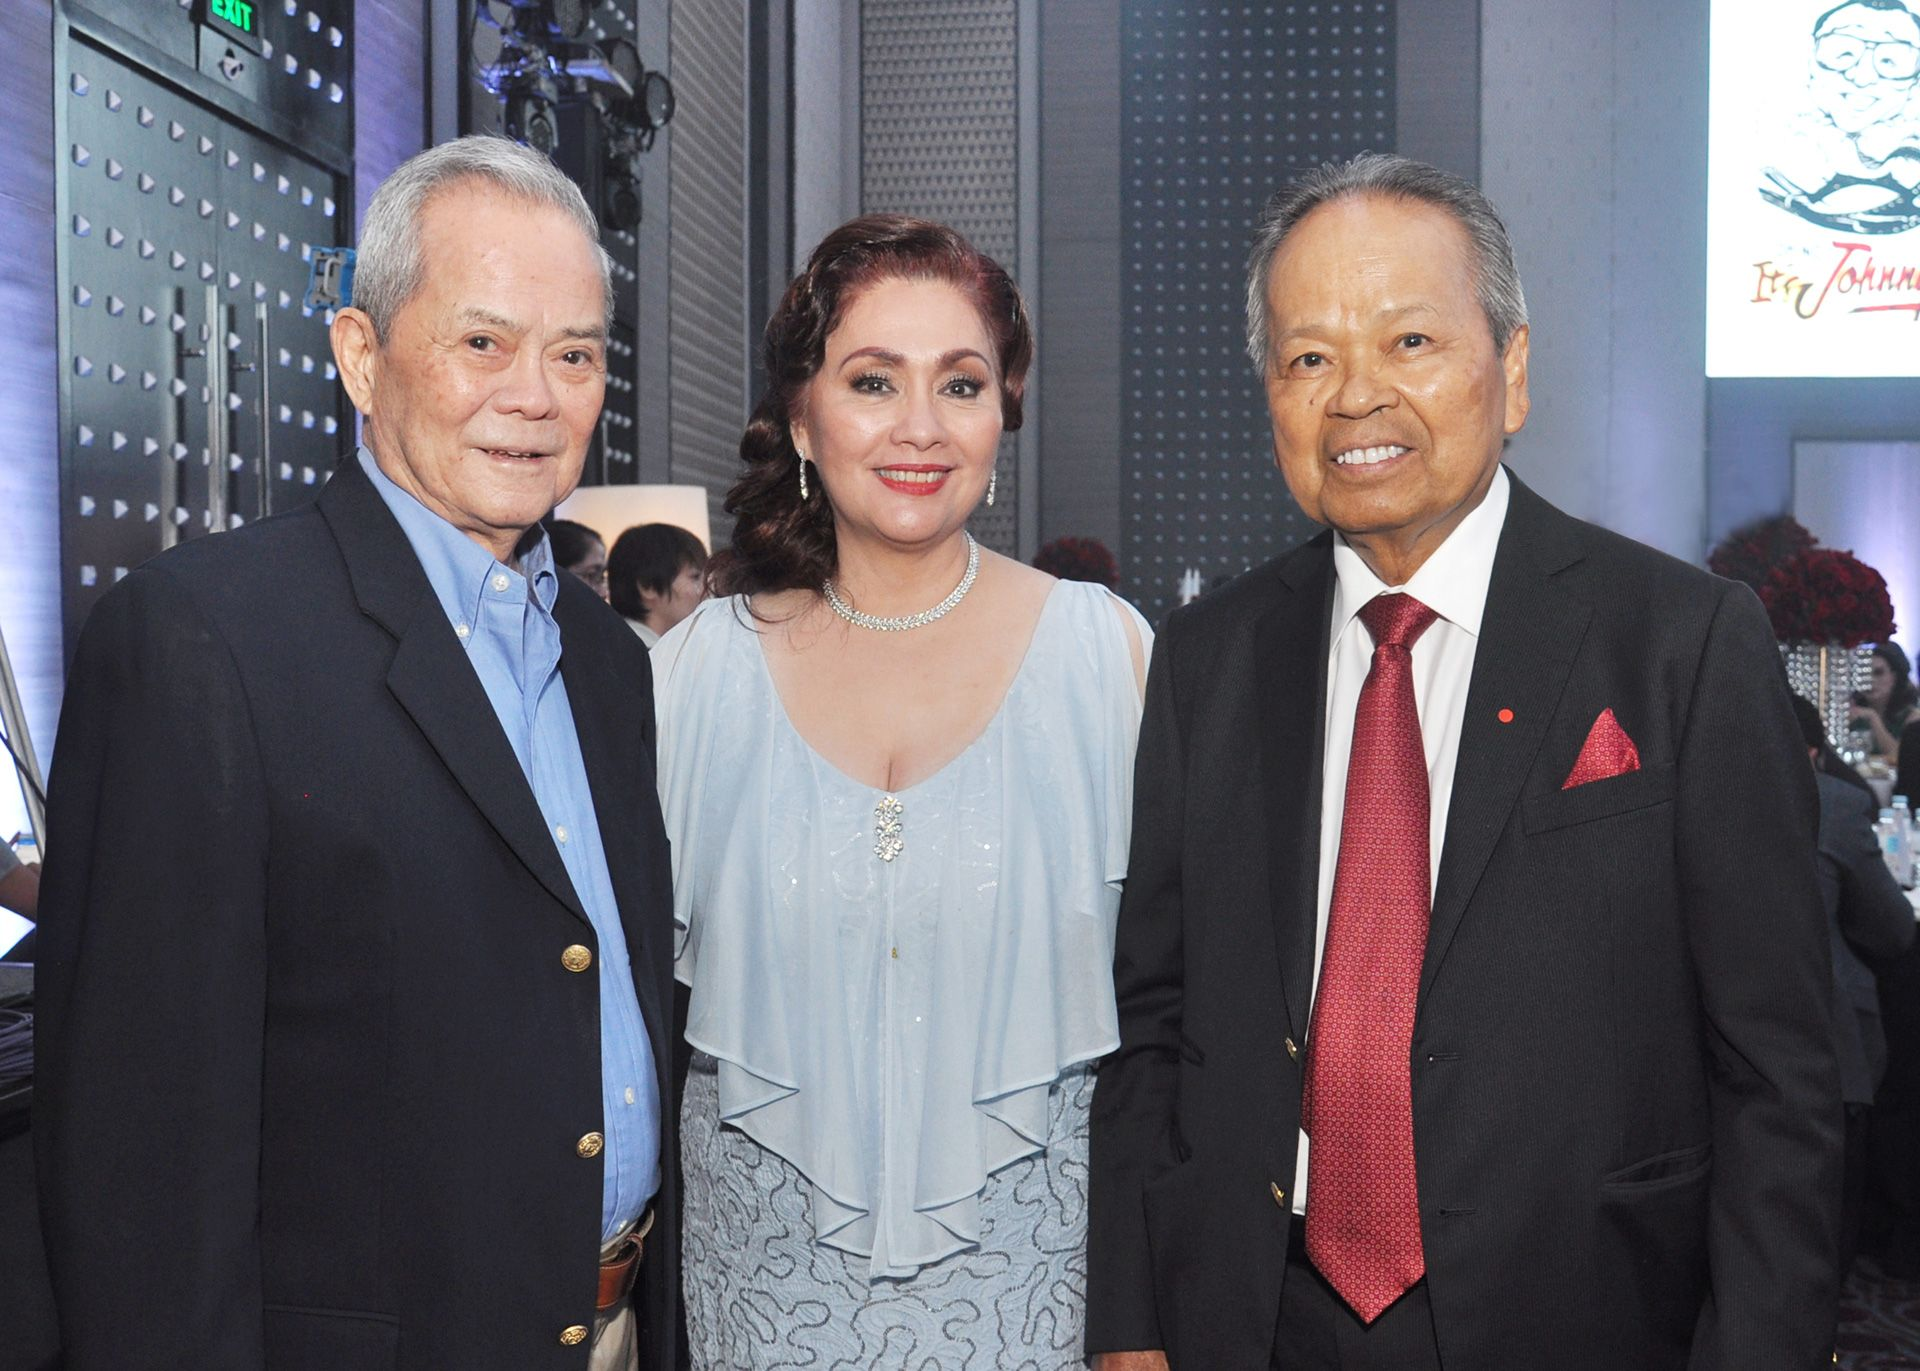 Vic Reyes, Dr. Minguita Padilla, and former Chief Justice Artemio Panganiban